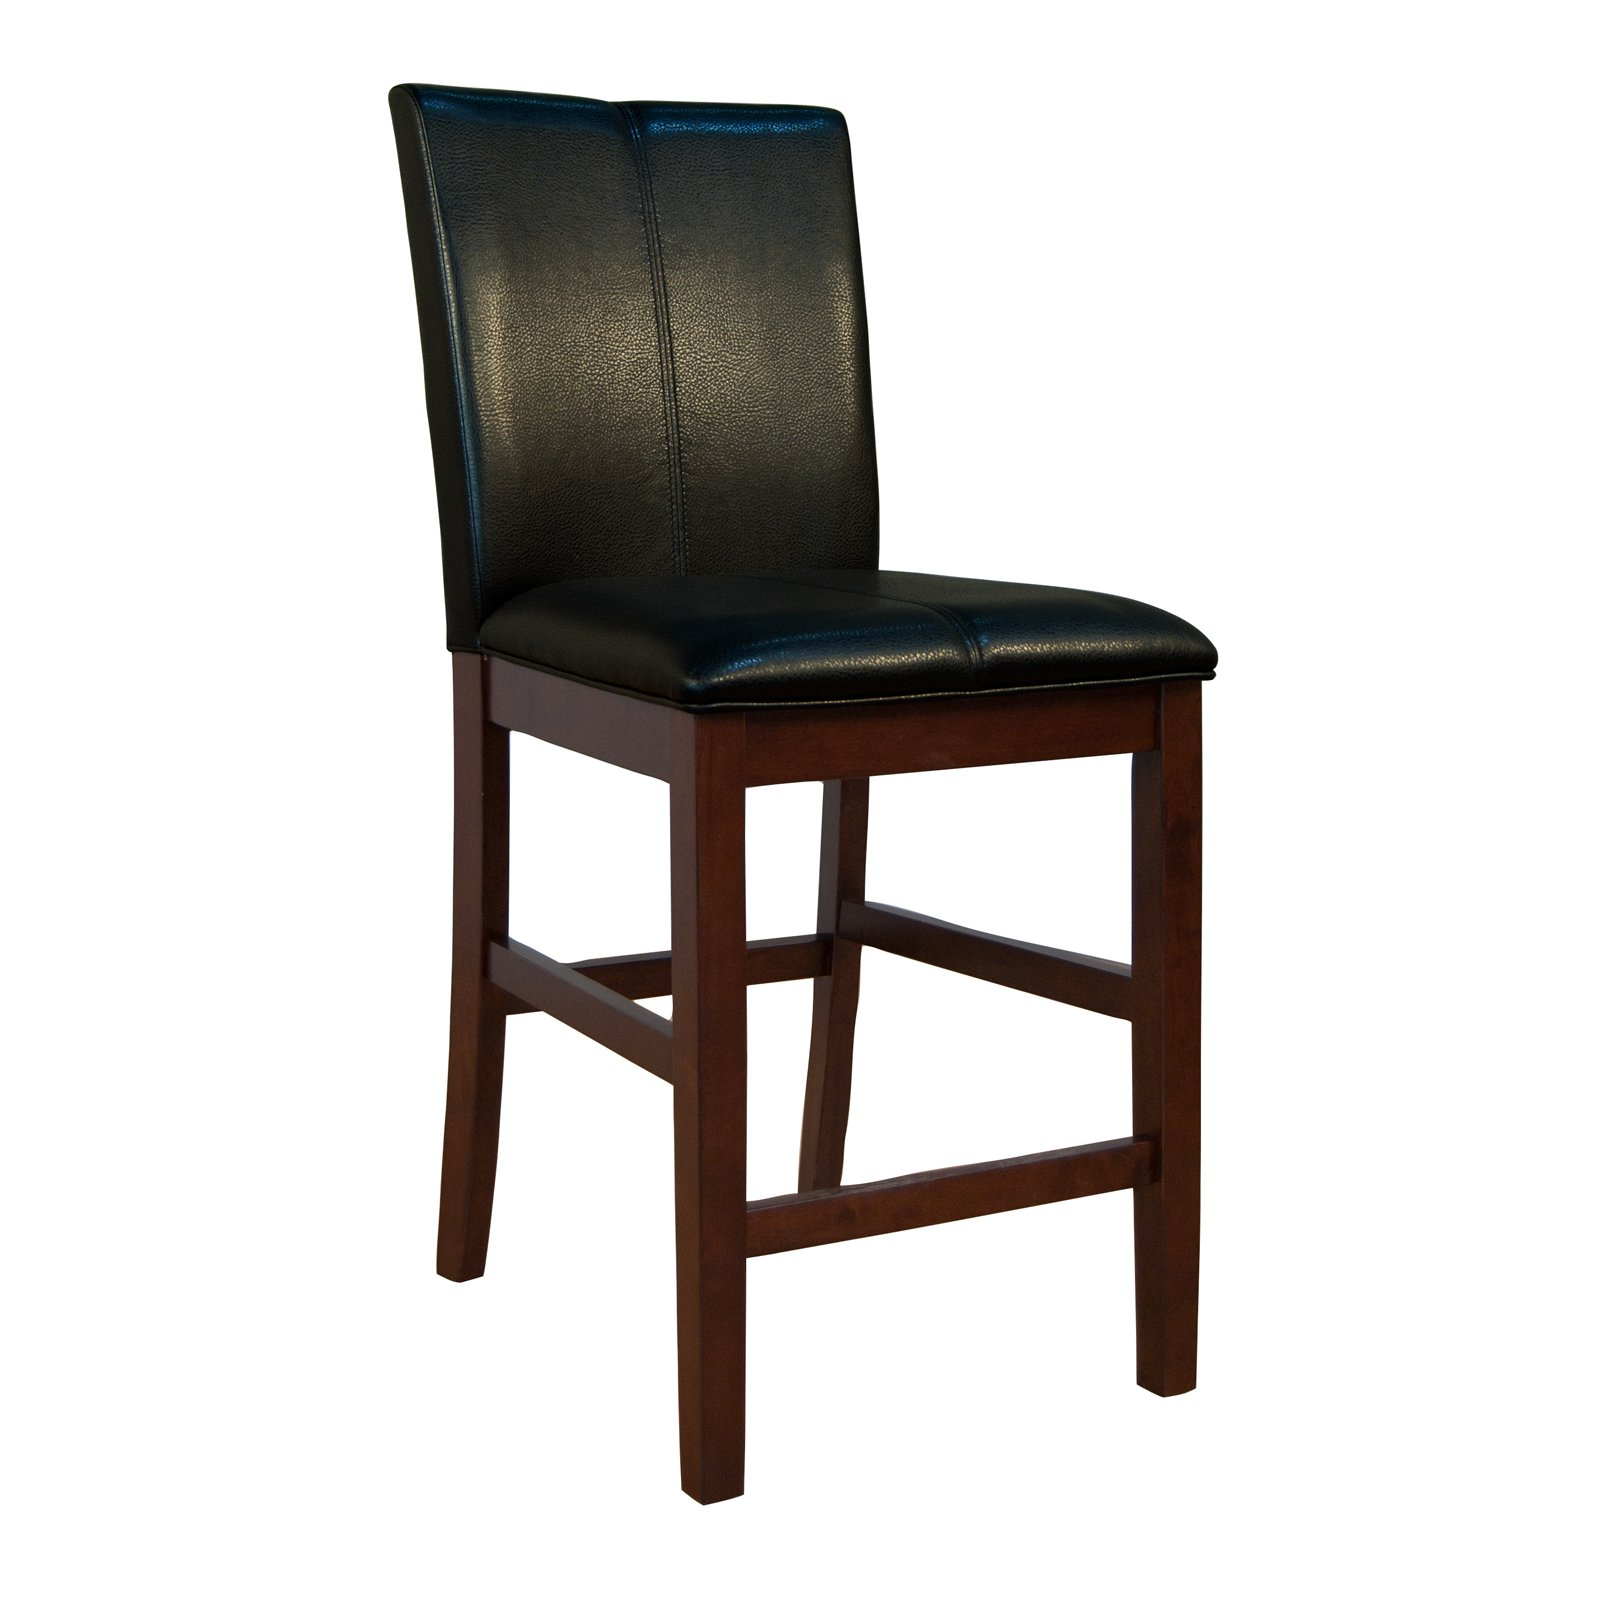 A America Parsons Curved Back Counter Stool Espresso